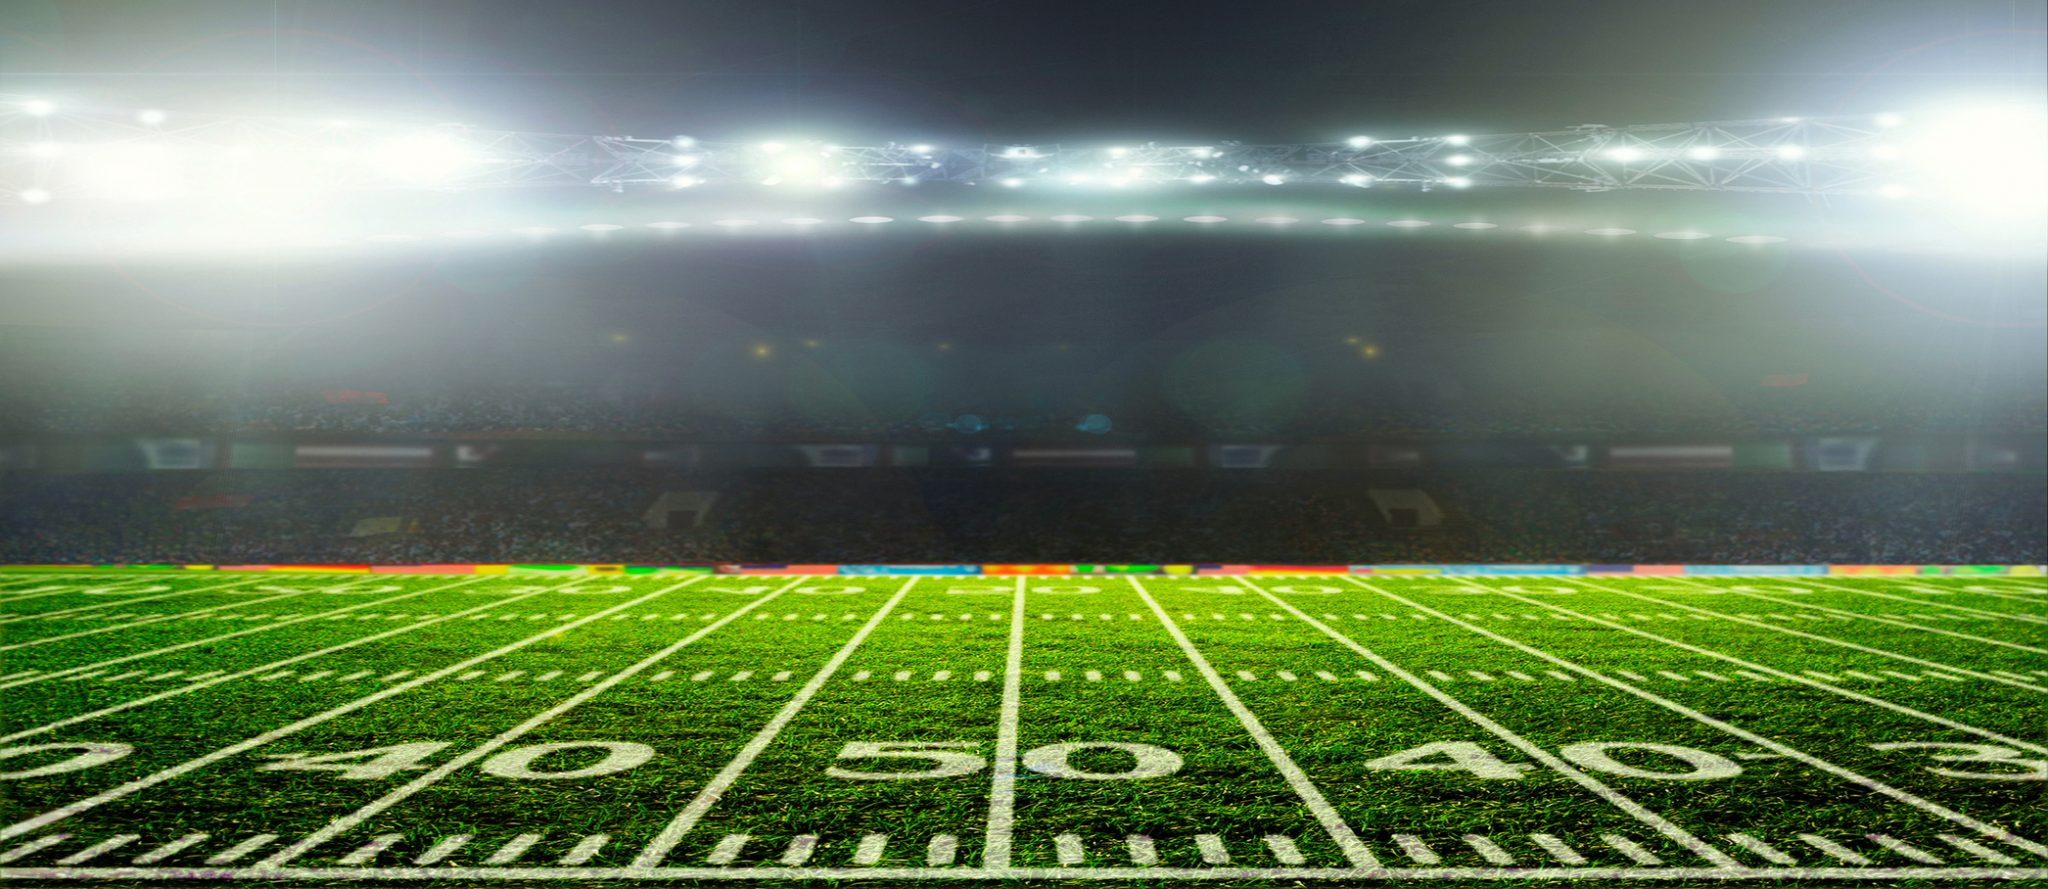 50 yard line of football field with night lights blazing